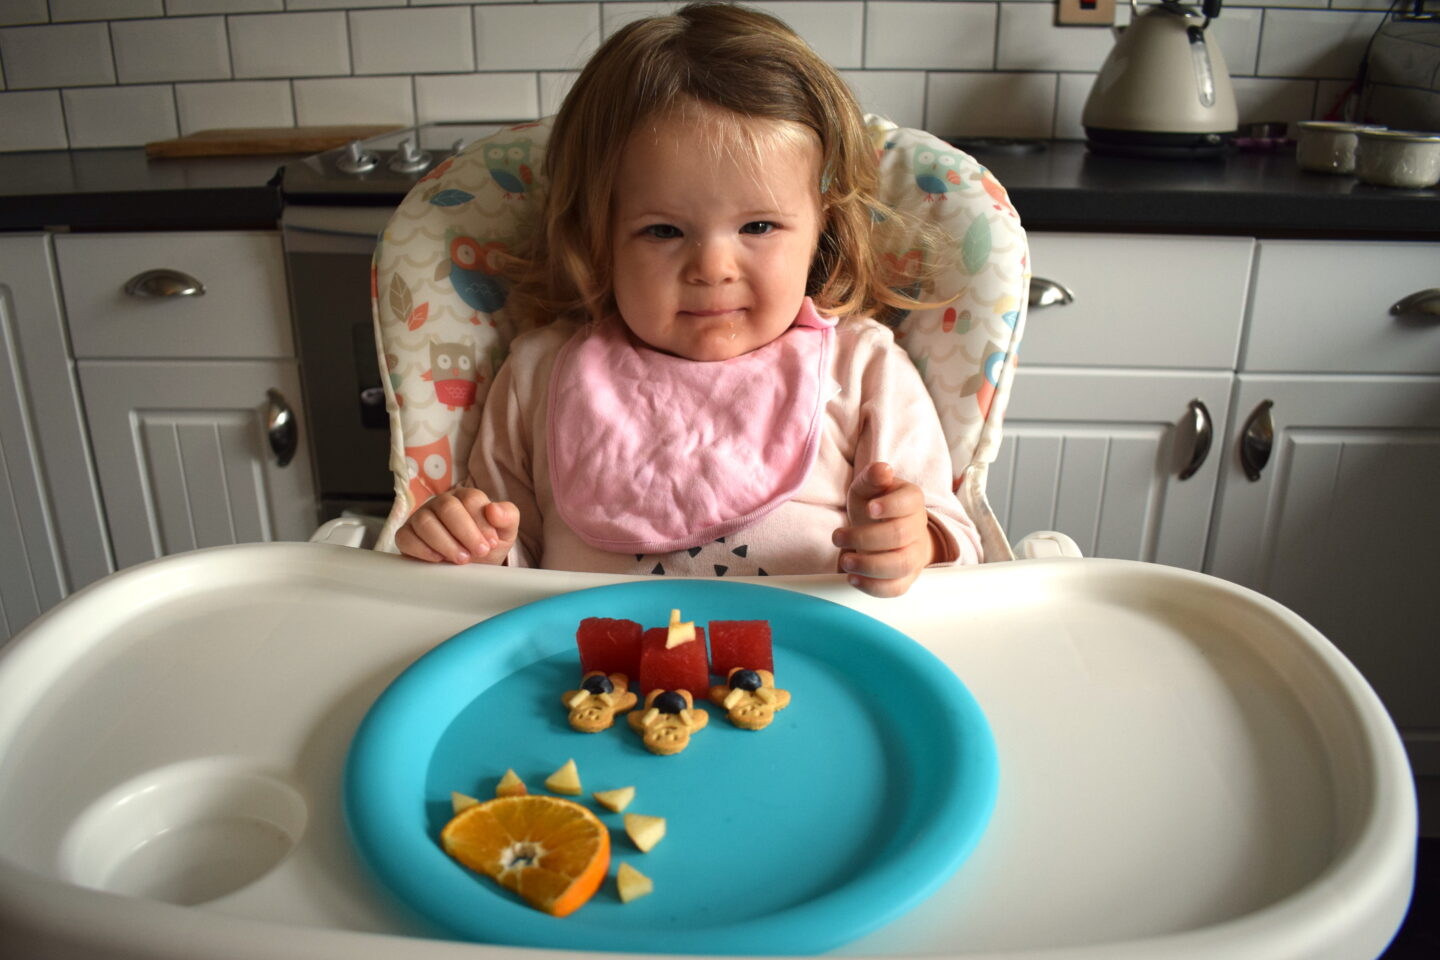 Making snack time more fun for toddlers